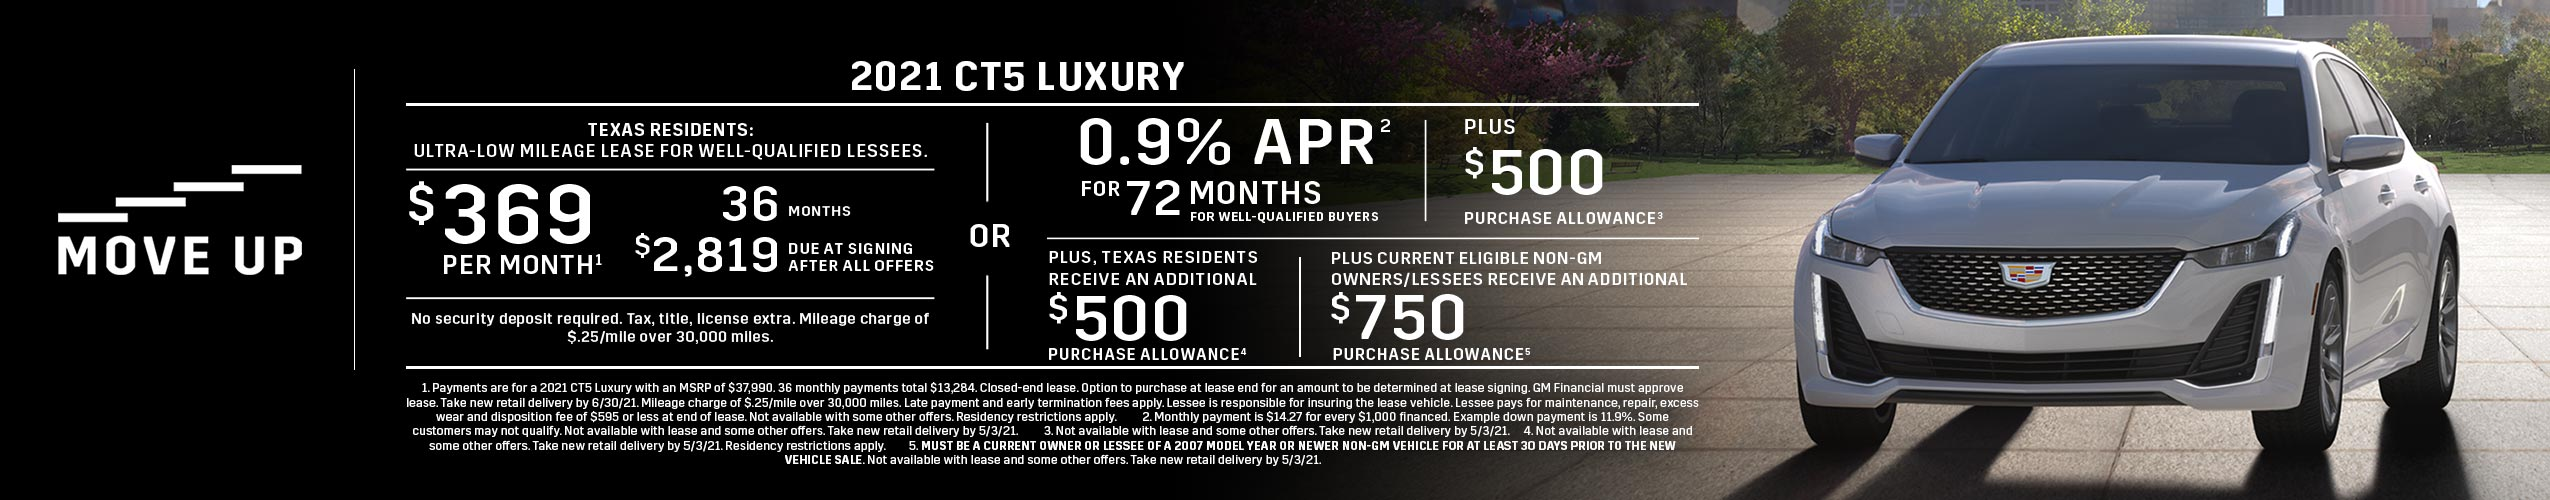 2021 CT5 Luxury: Lease Offer (Image) - ebdafc